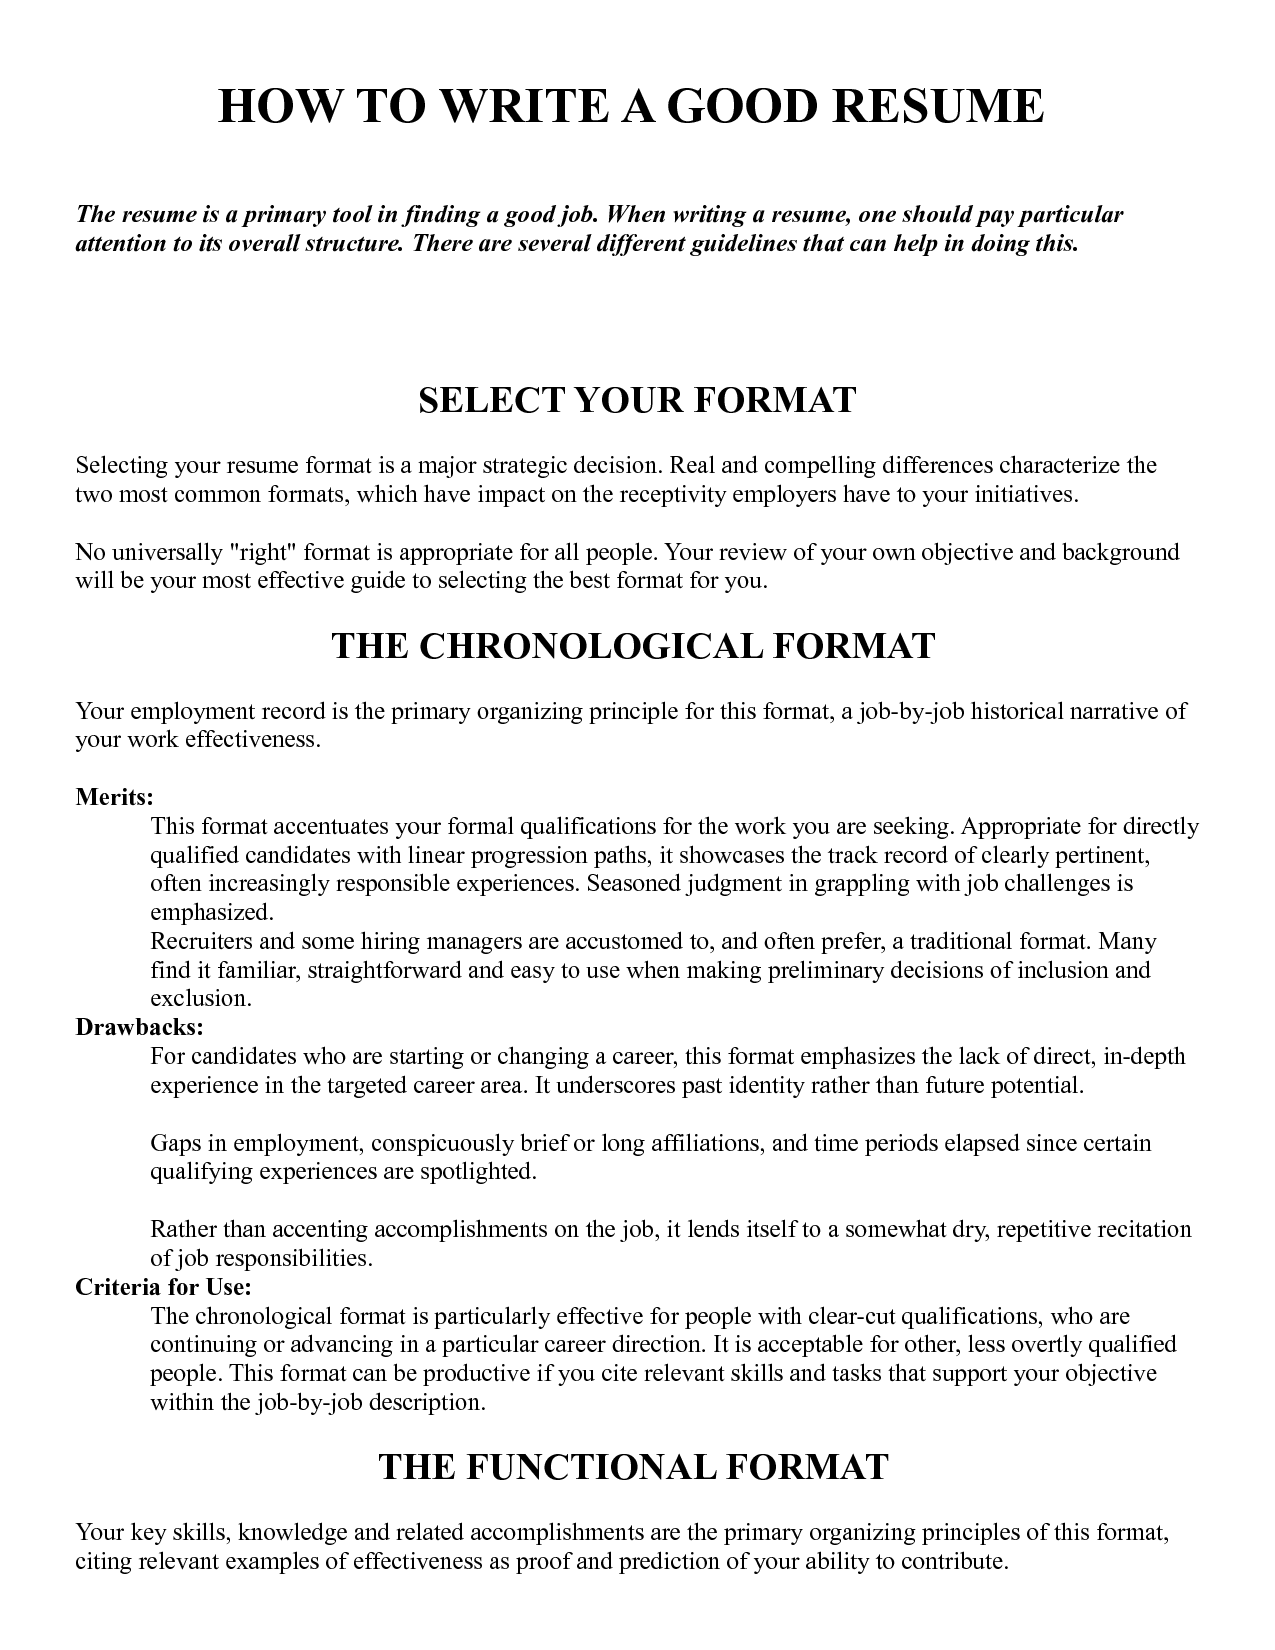 Format In Writing Cv